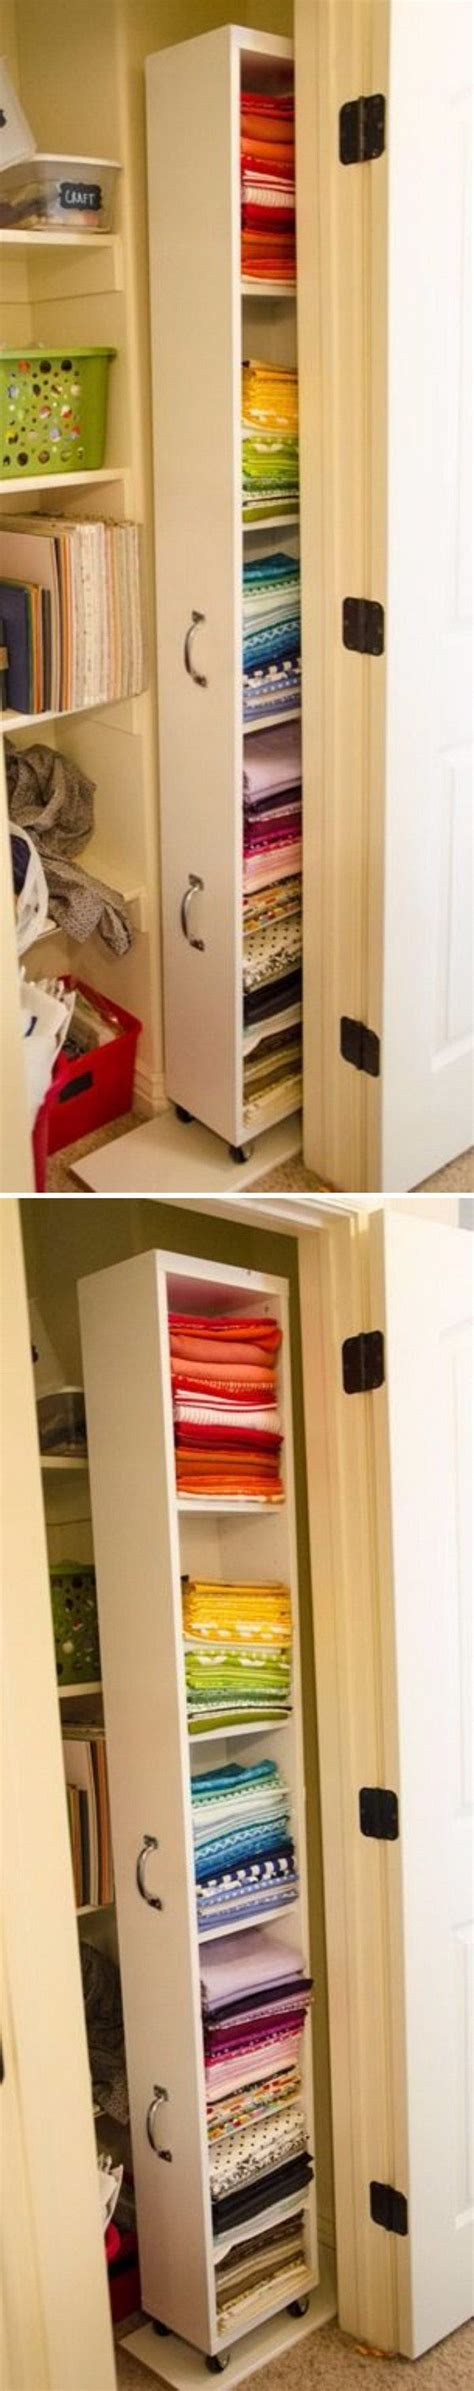 ikea hack closet organizer 25 best ideas about ikea billy hack on pinterest ikea billy billy bookcase hack and billy